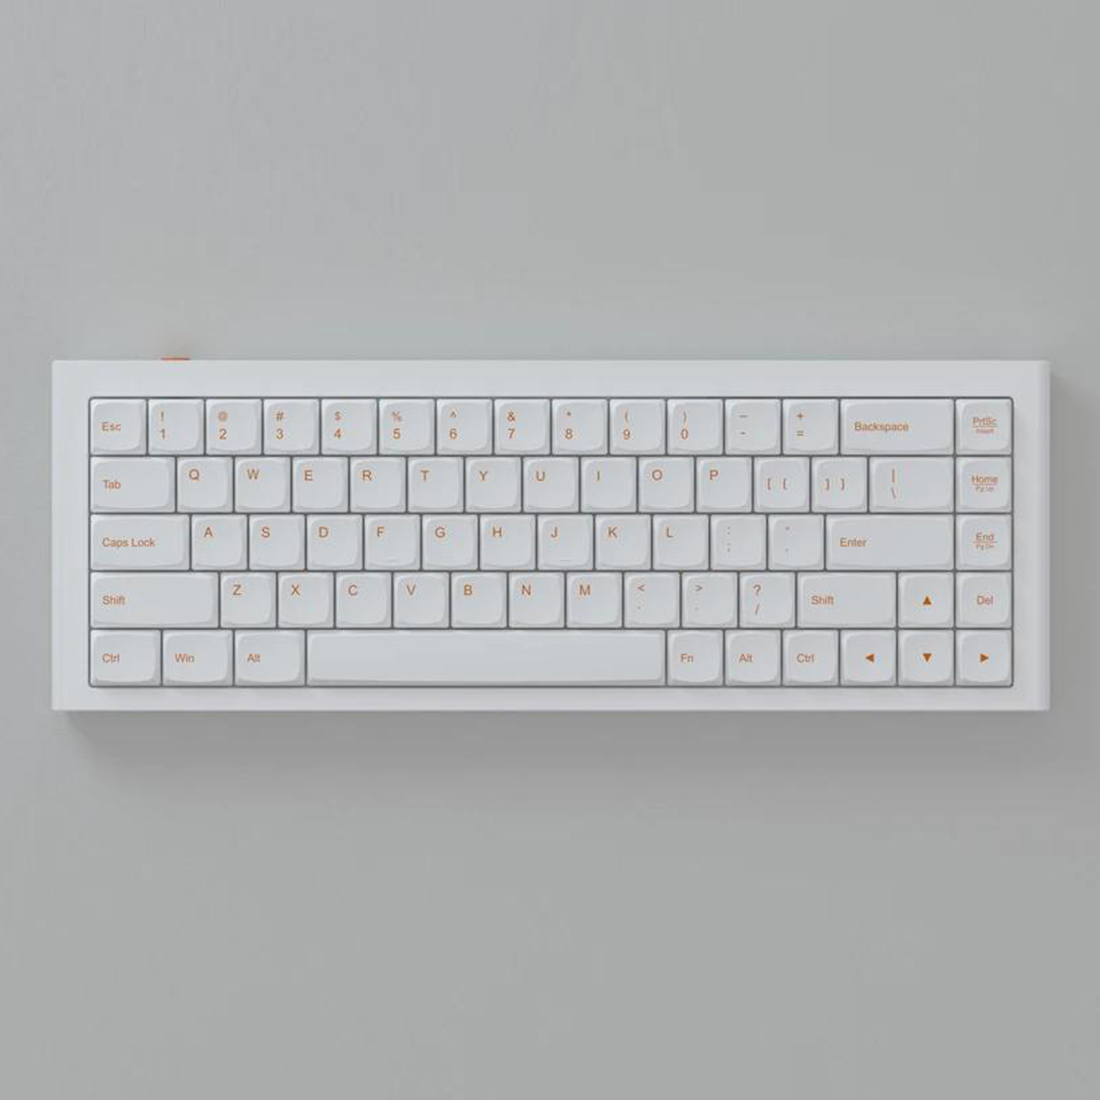 Mogrie RKB68 60% Gaming Mechanical Keyboard PBT Keycaps Ultra-thin Wired Wireless Bluetooth Dual-mode